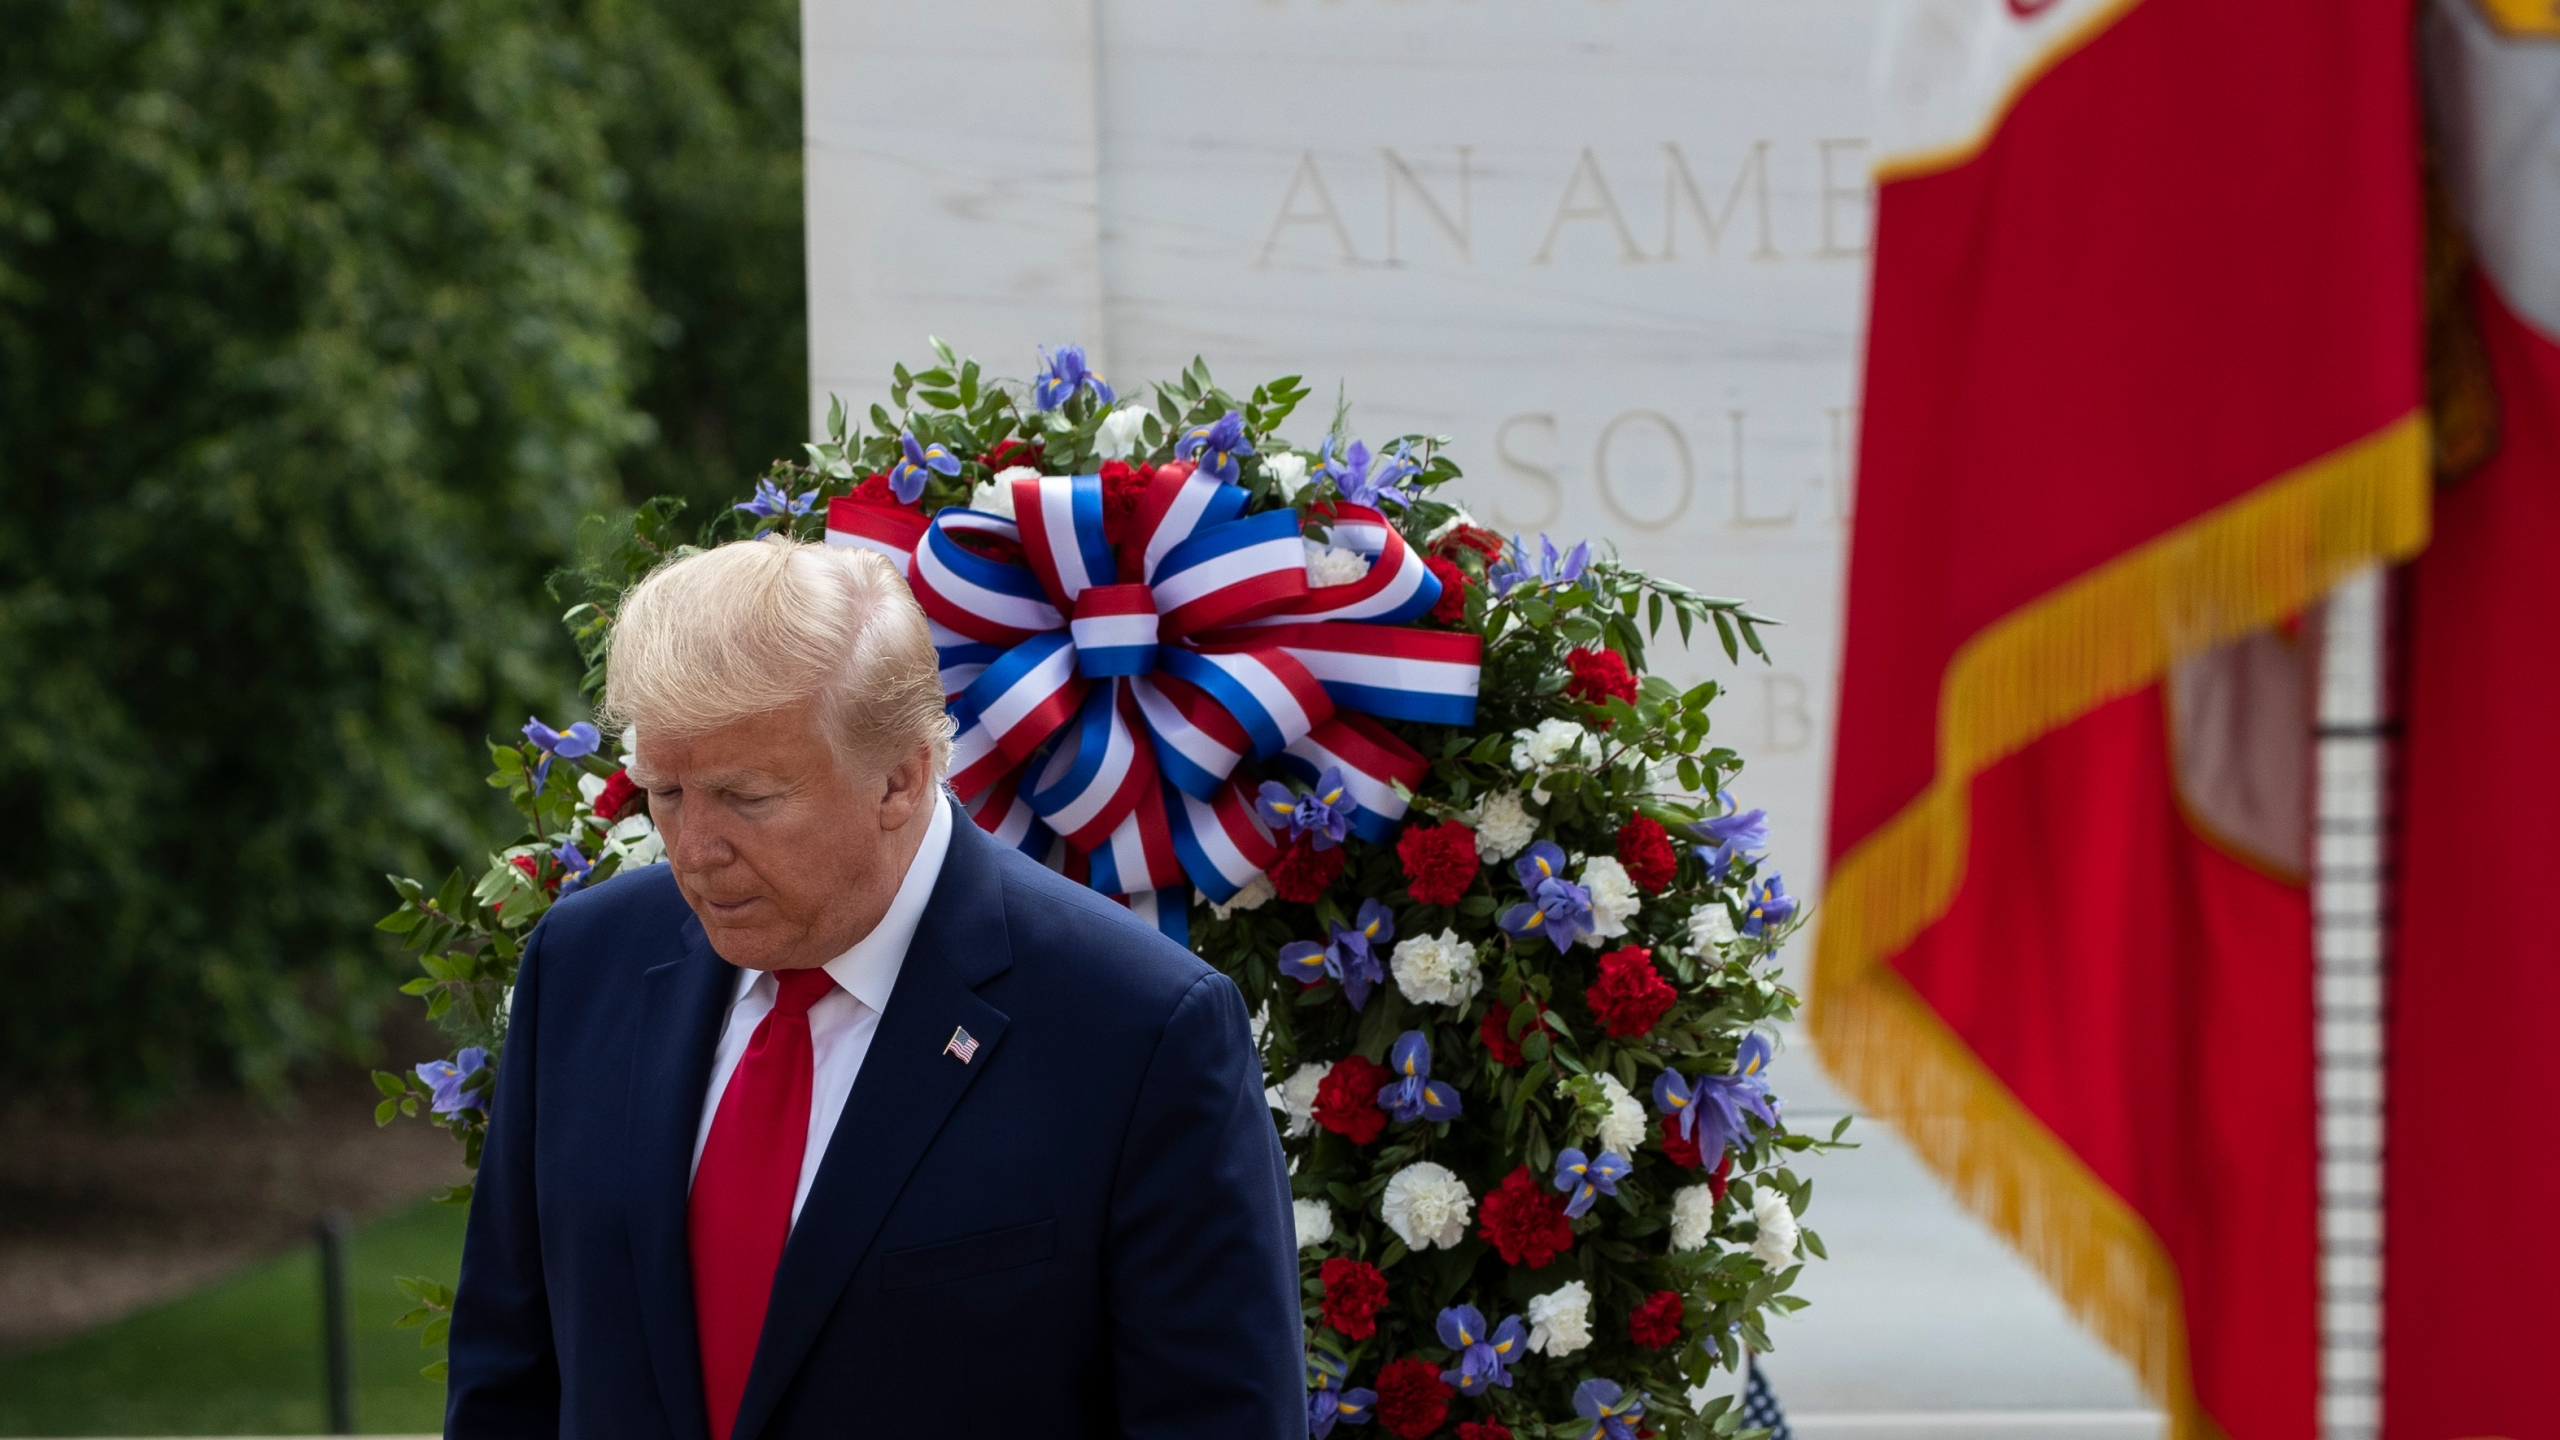 Tri Cities Tn Christmas Eve Events 2020 Trump honors fallen soldiers on Memorial Day in twin events | WJHL